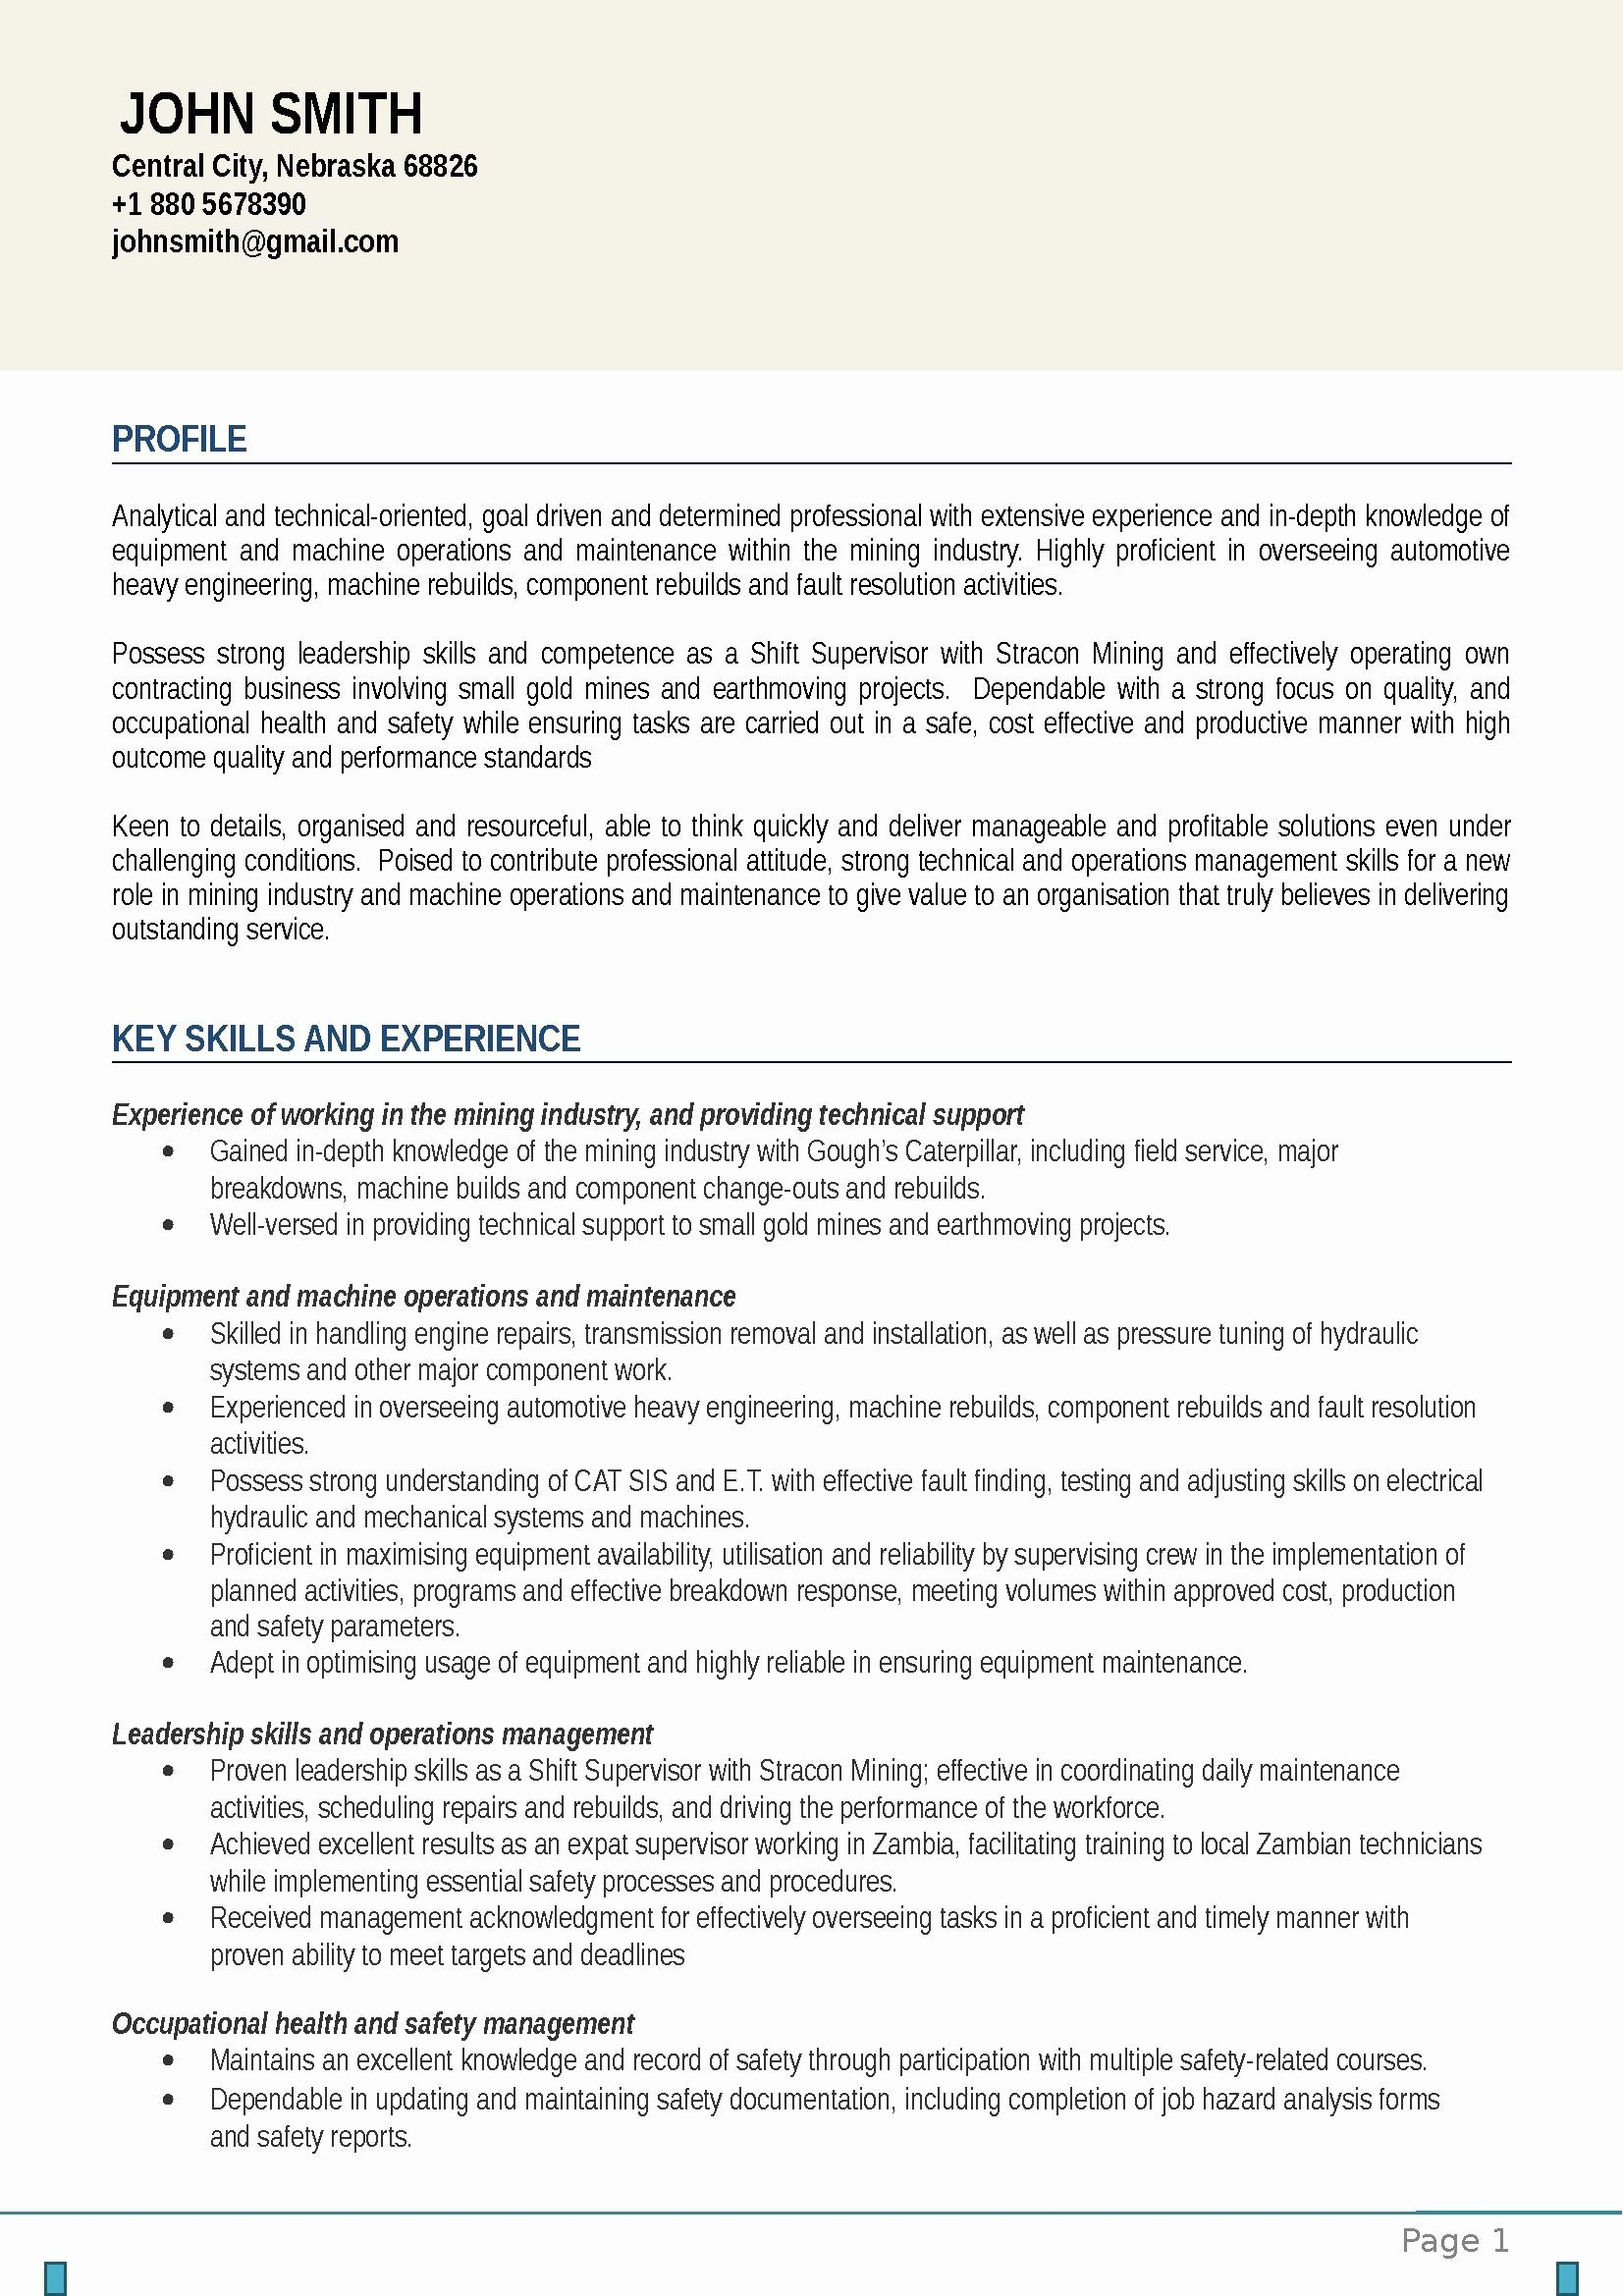 Byu Marriott School Resume Template - Resume Examples for 92y Resume Examples Pinterest